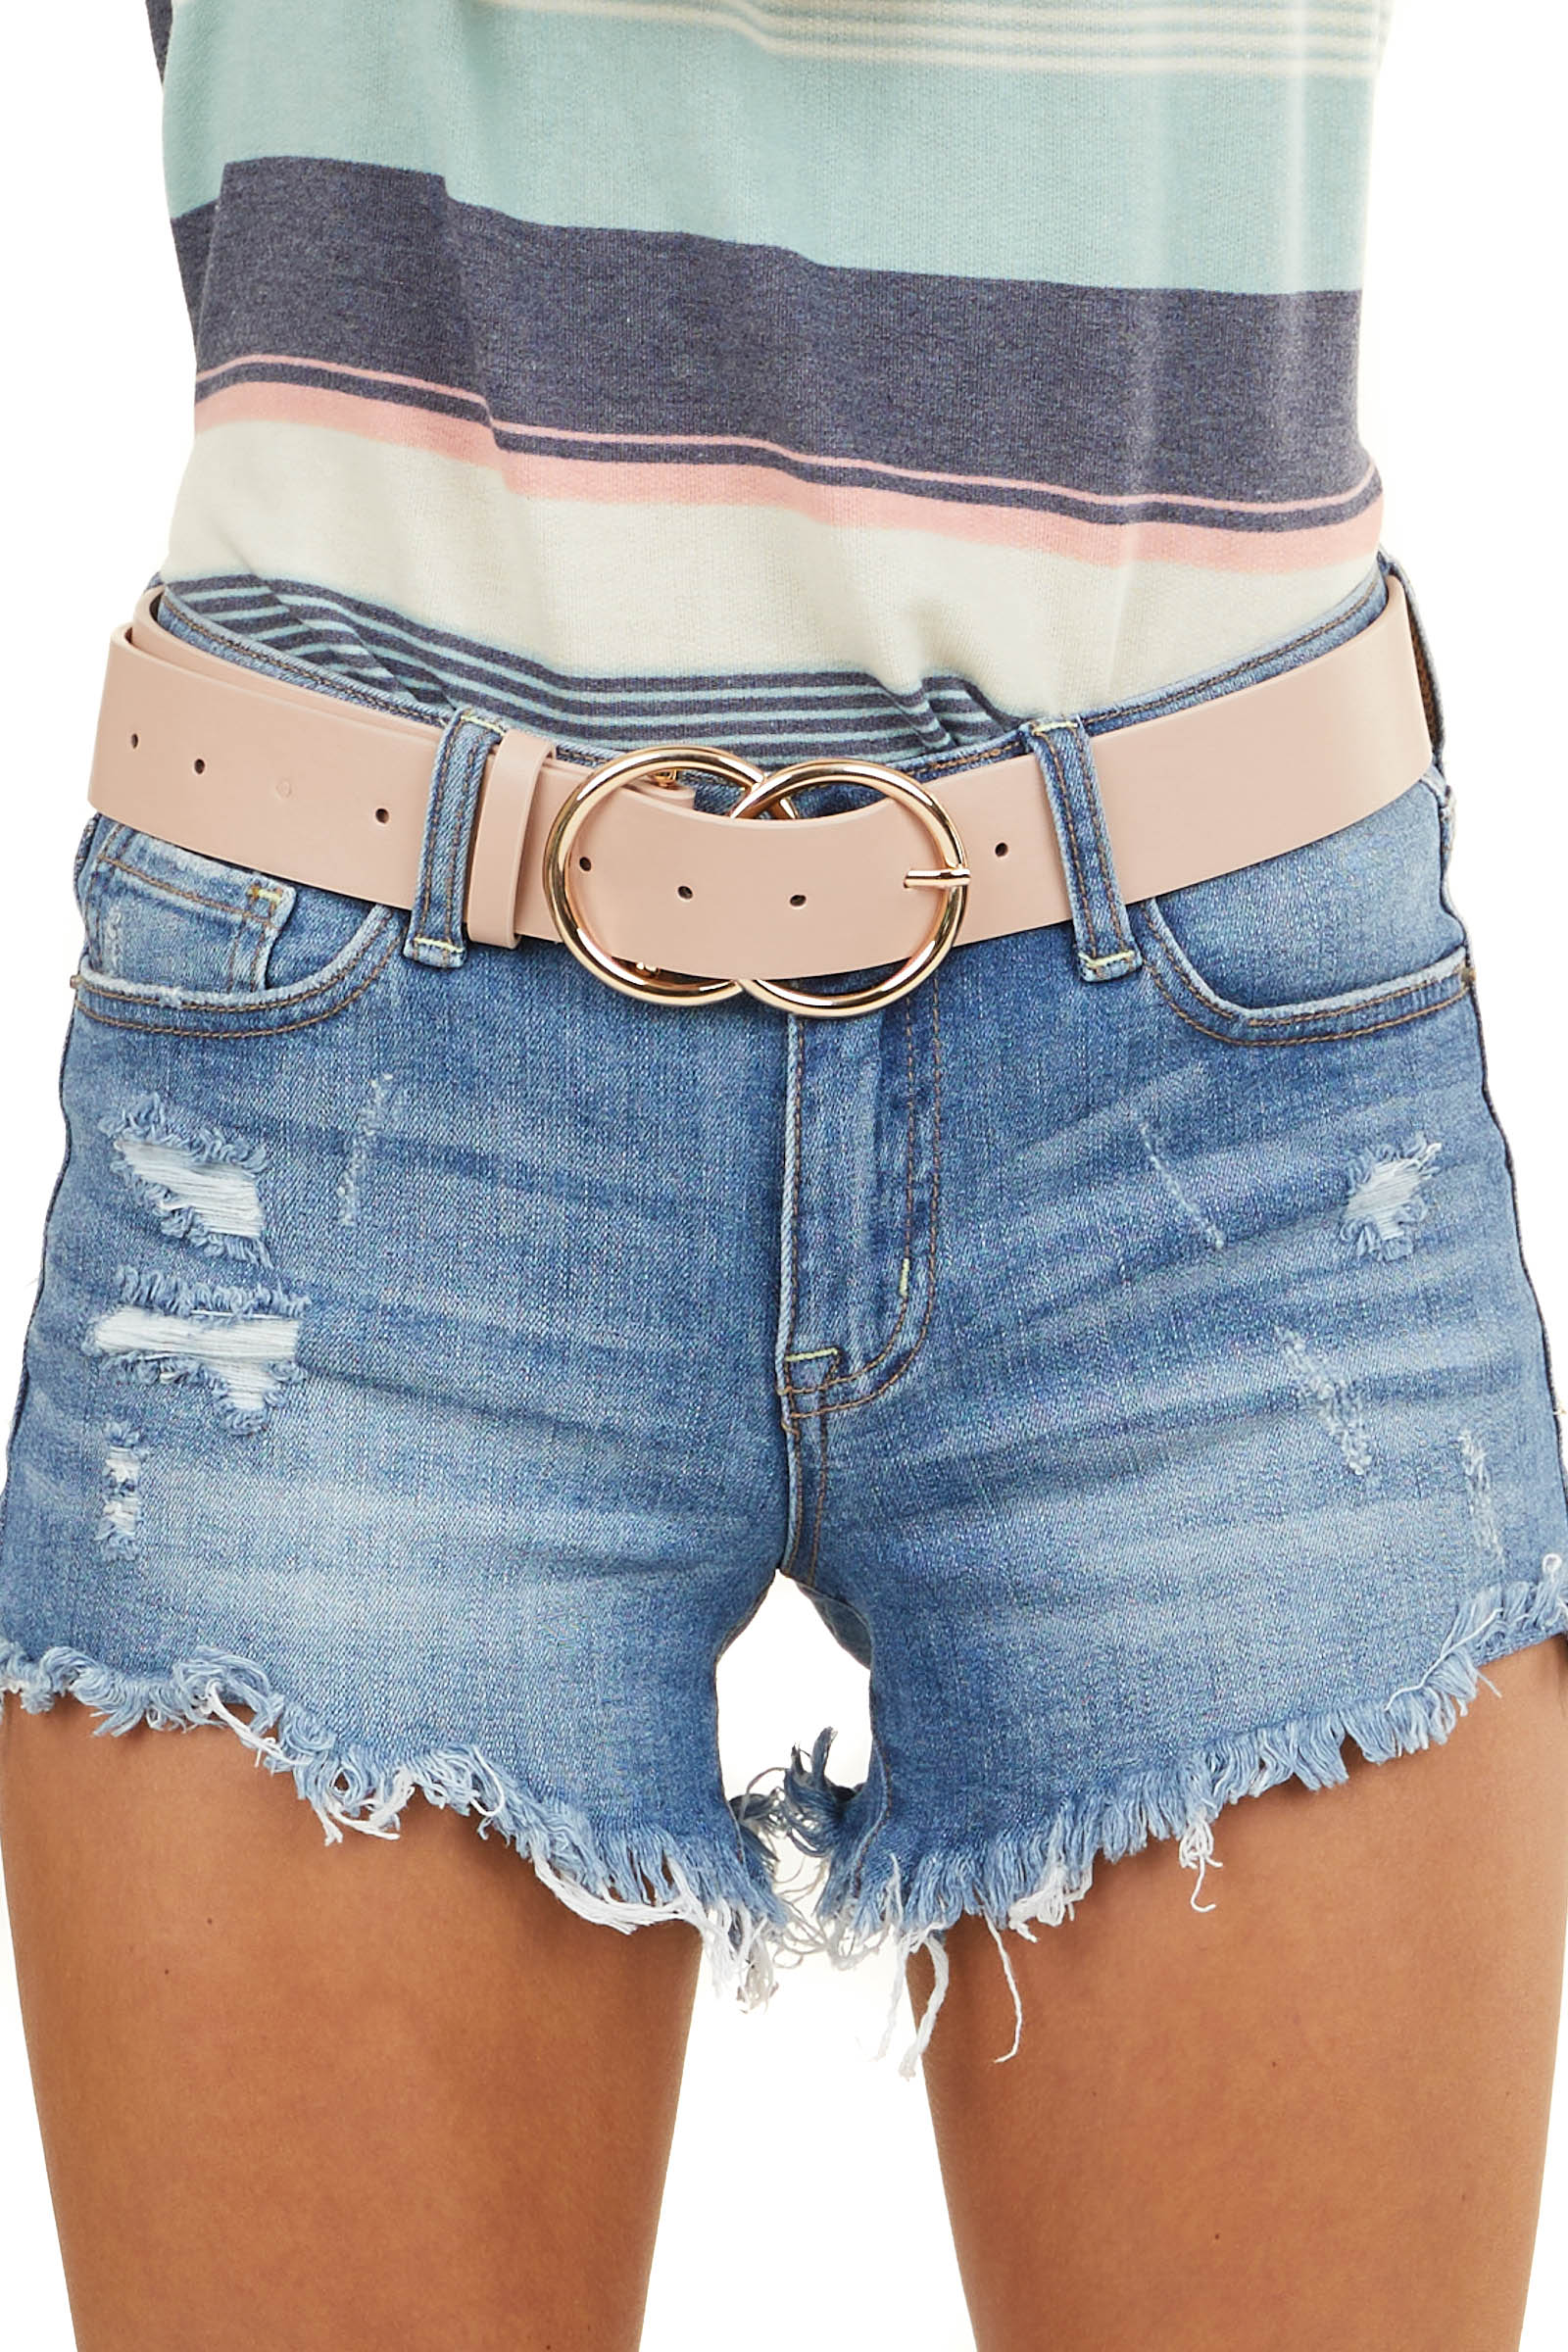 Blush Faux Leather Belt with Gold Double Ring Buckle